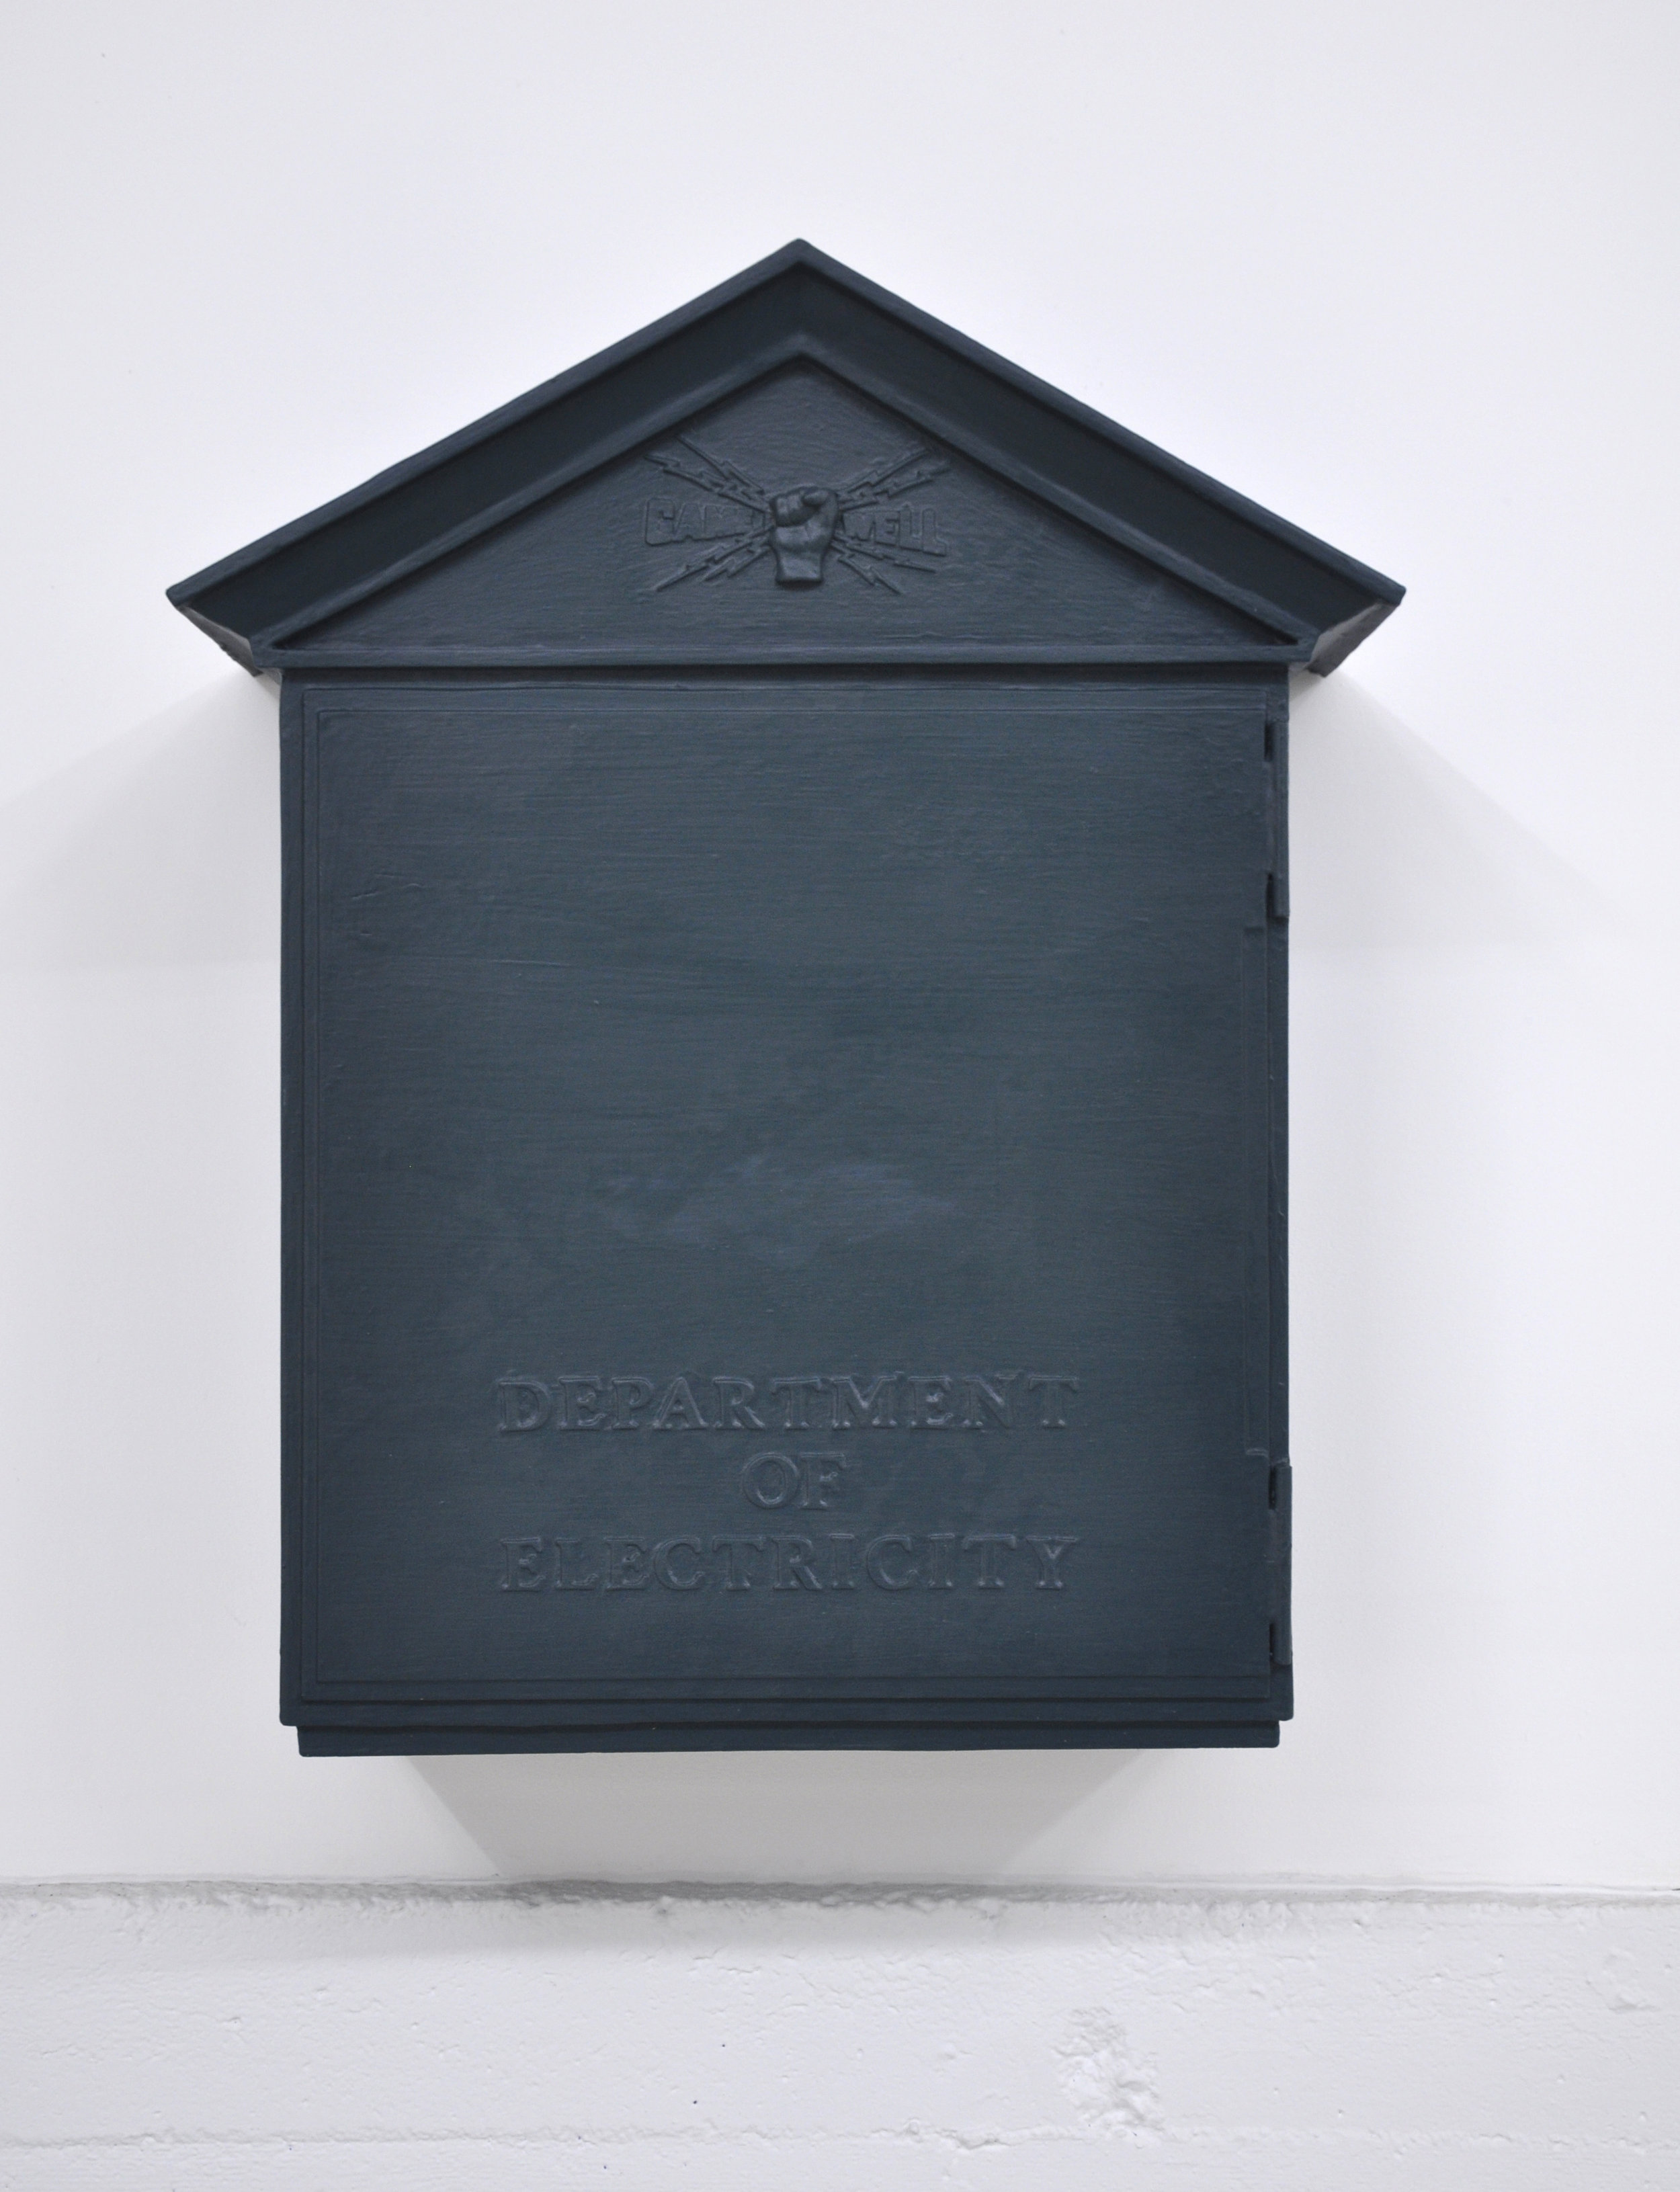 Malcolm Kenter, Game Well Box, 2019, Latex on Plasticine, Wood, Foam, Plastic, 34.25 x 10 x 28 in